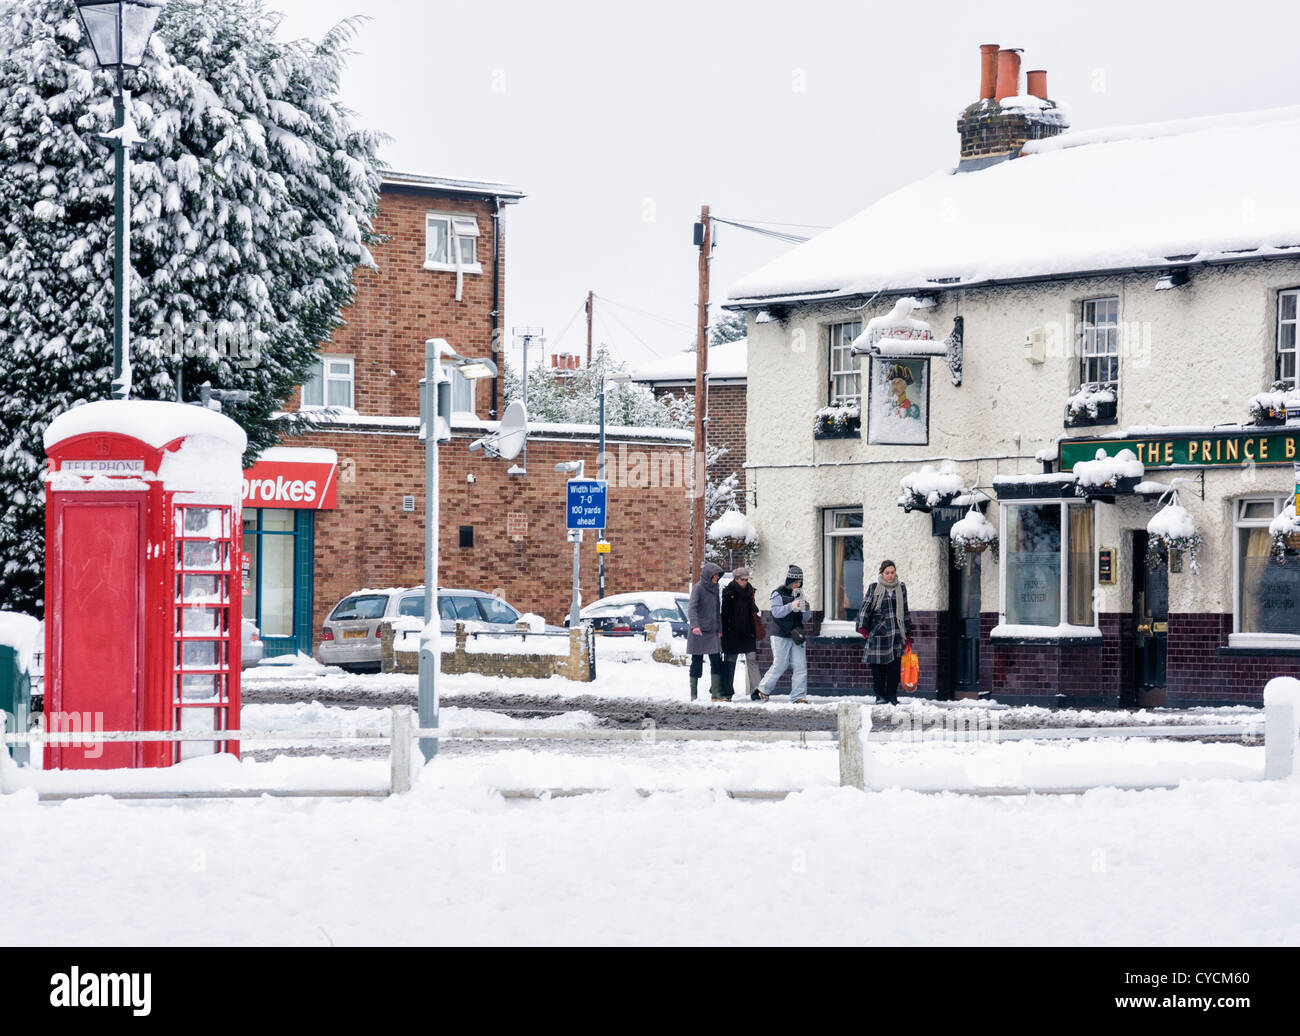 The Prince Blucher Pub after a heavy snowfall - Twickenham, England - Stock Image